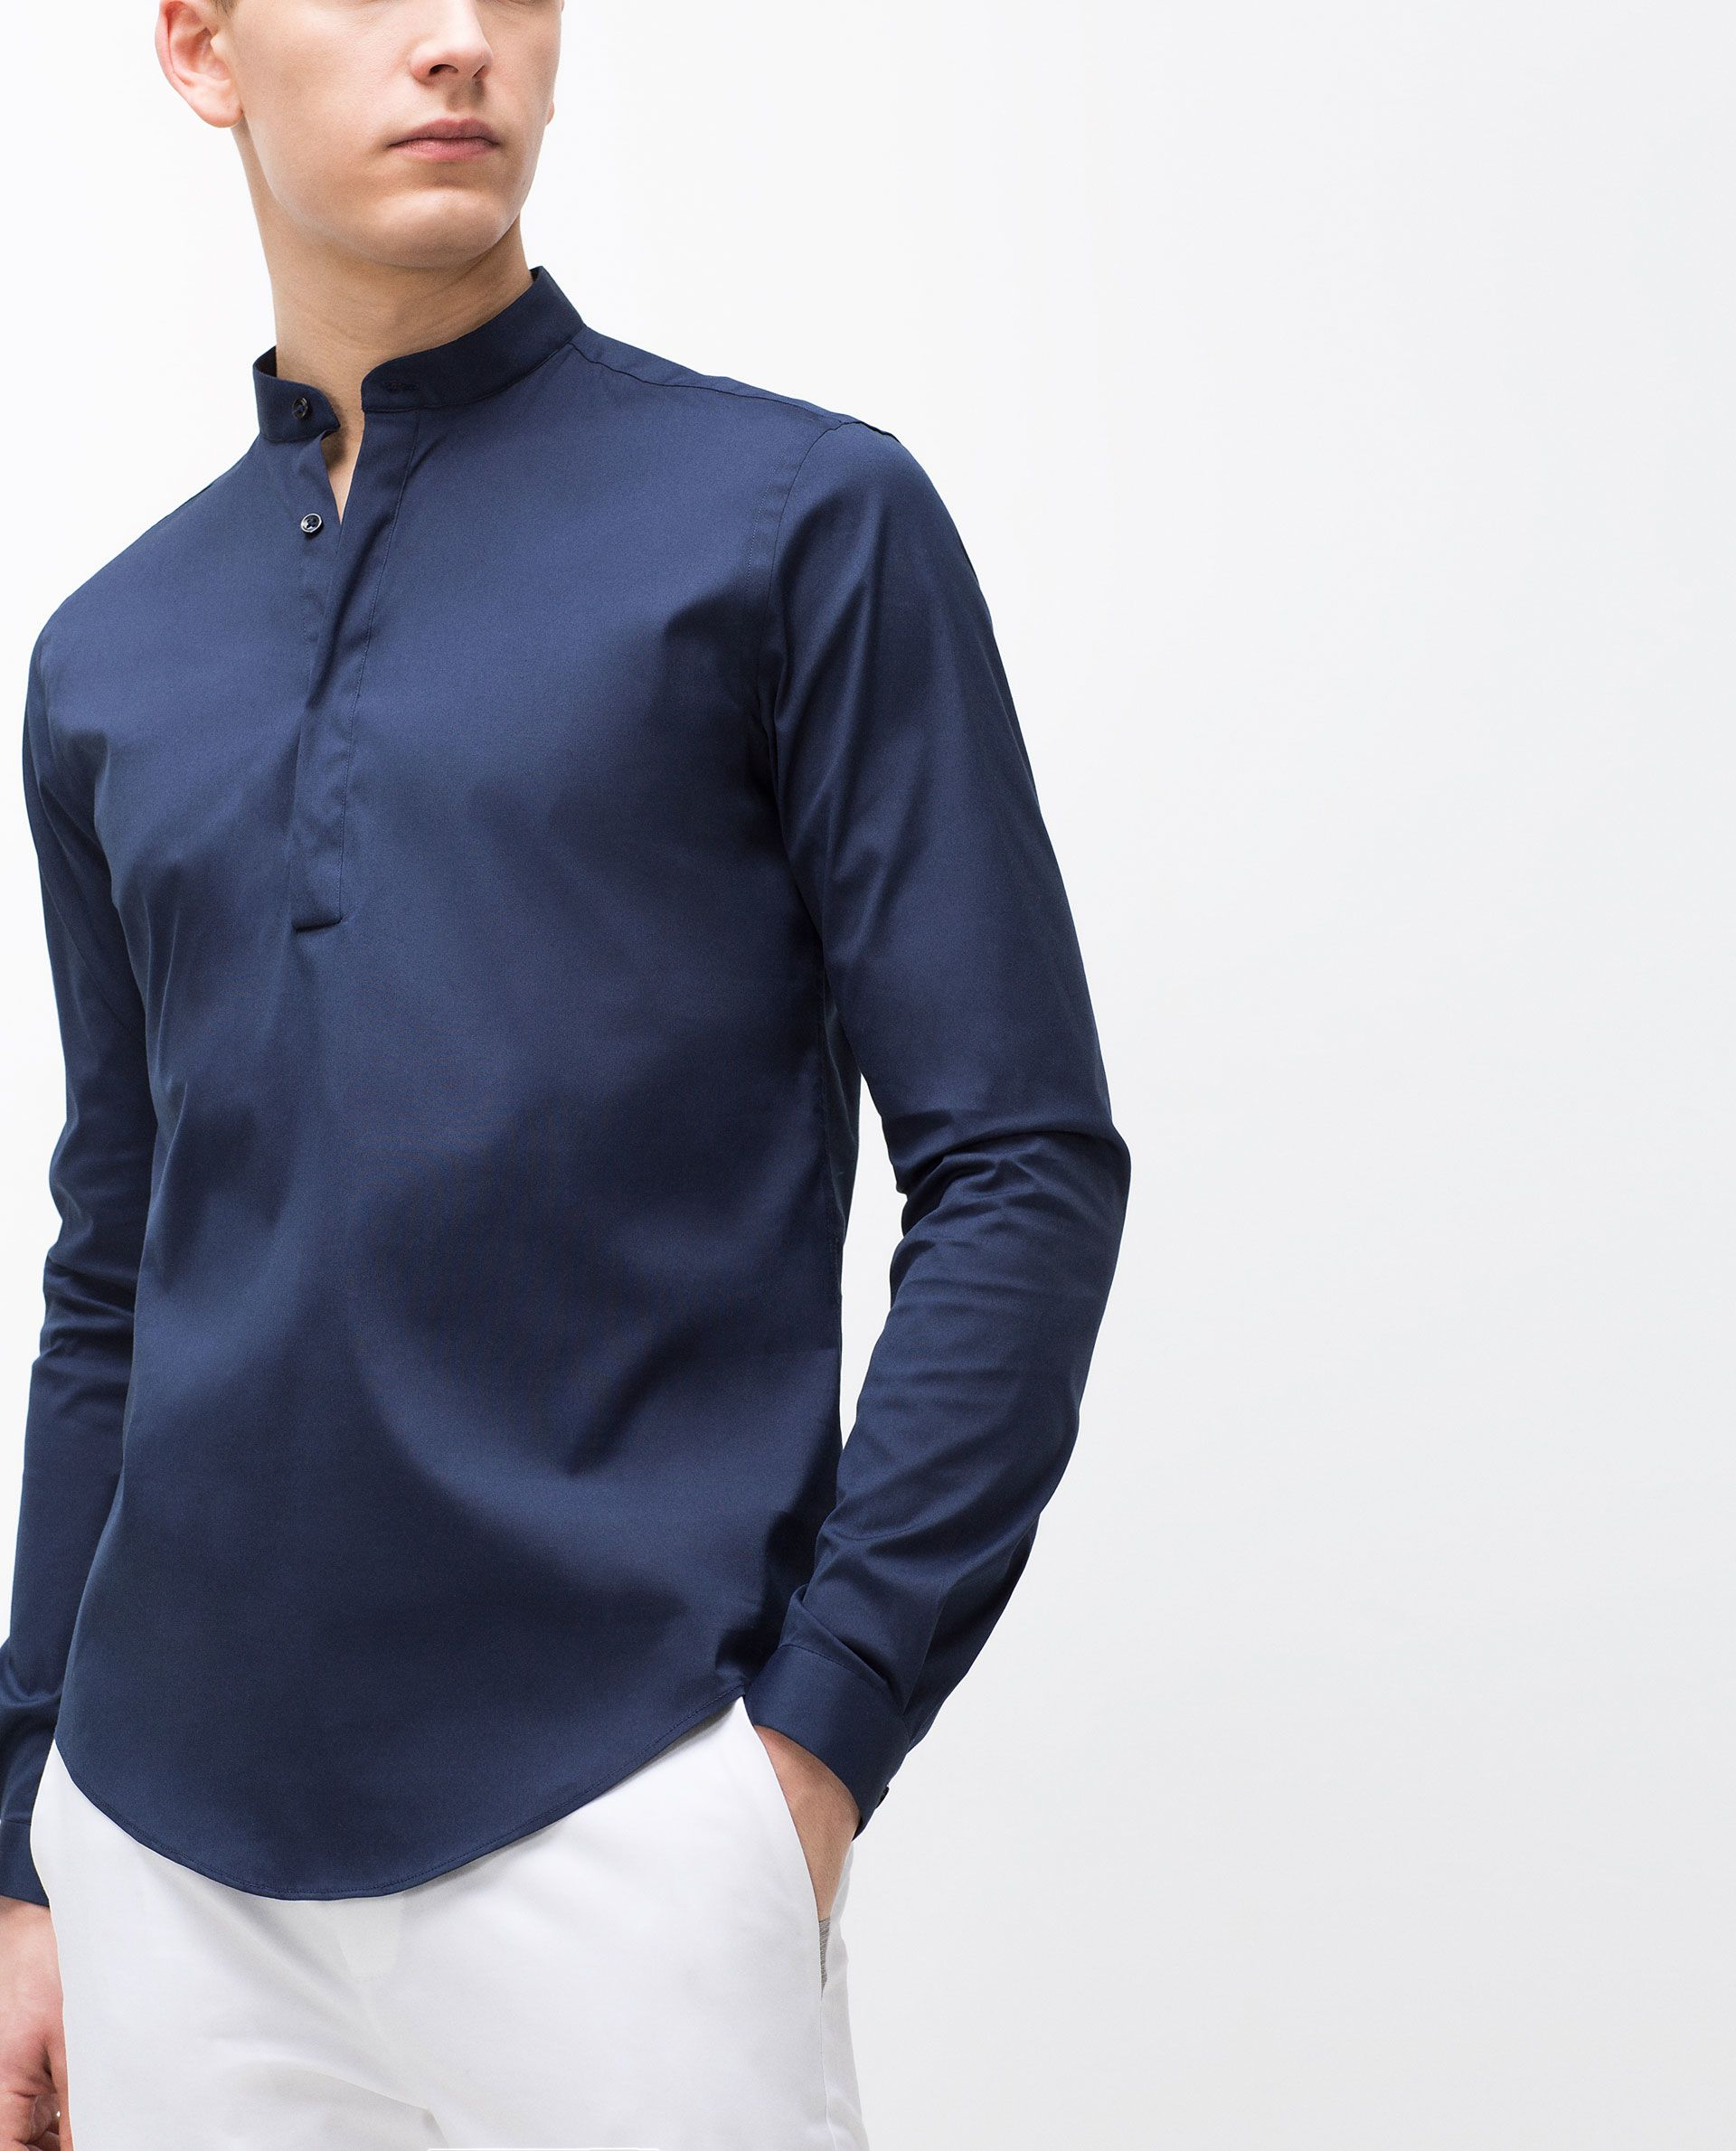 428e6ba31ccda Image result for blue chinese collar shirt | Shop | Mandarin collar ...